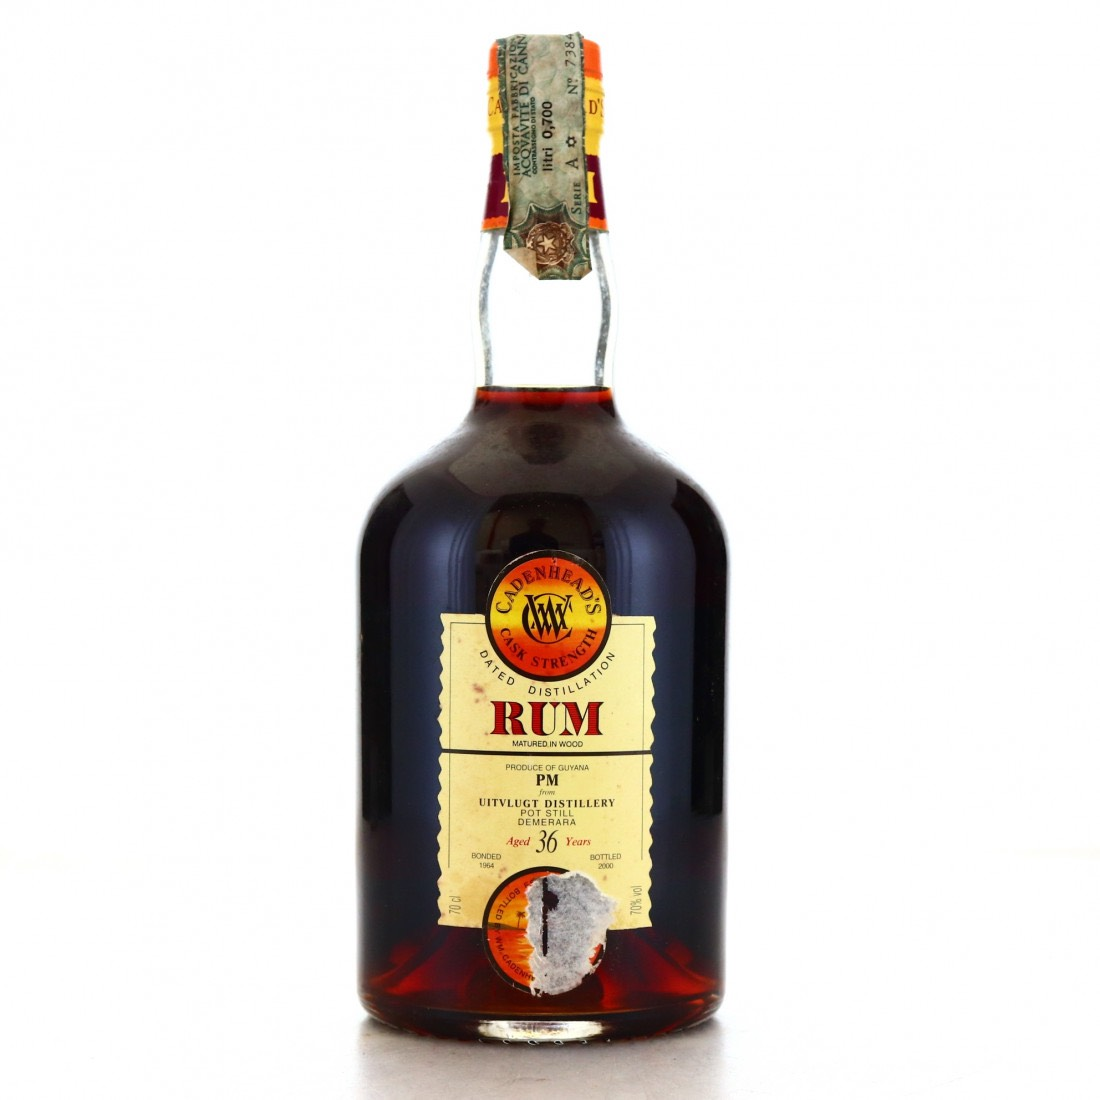 Bottle image of PM